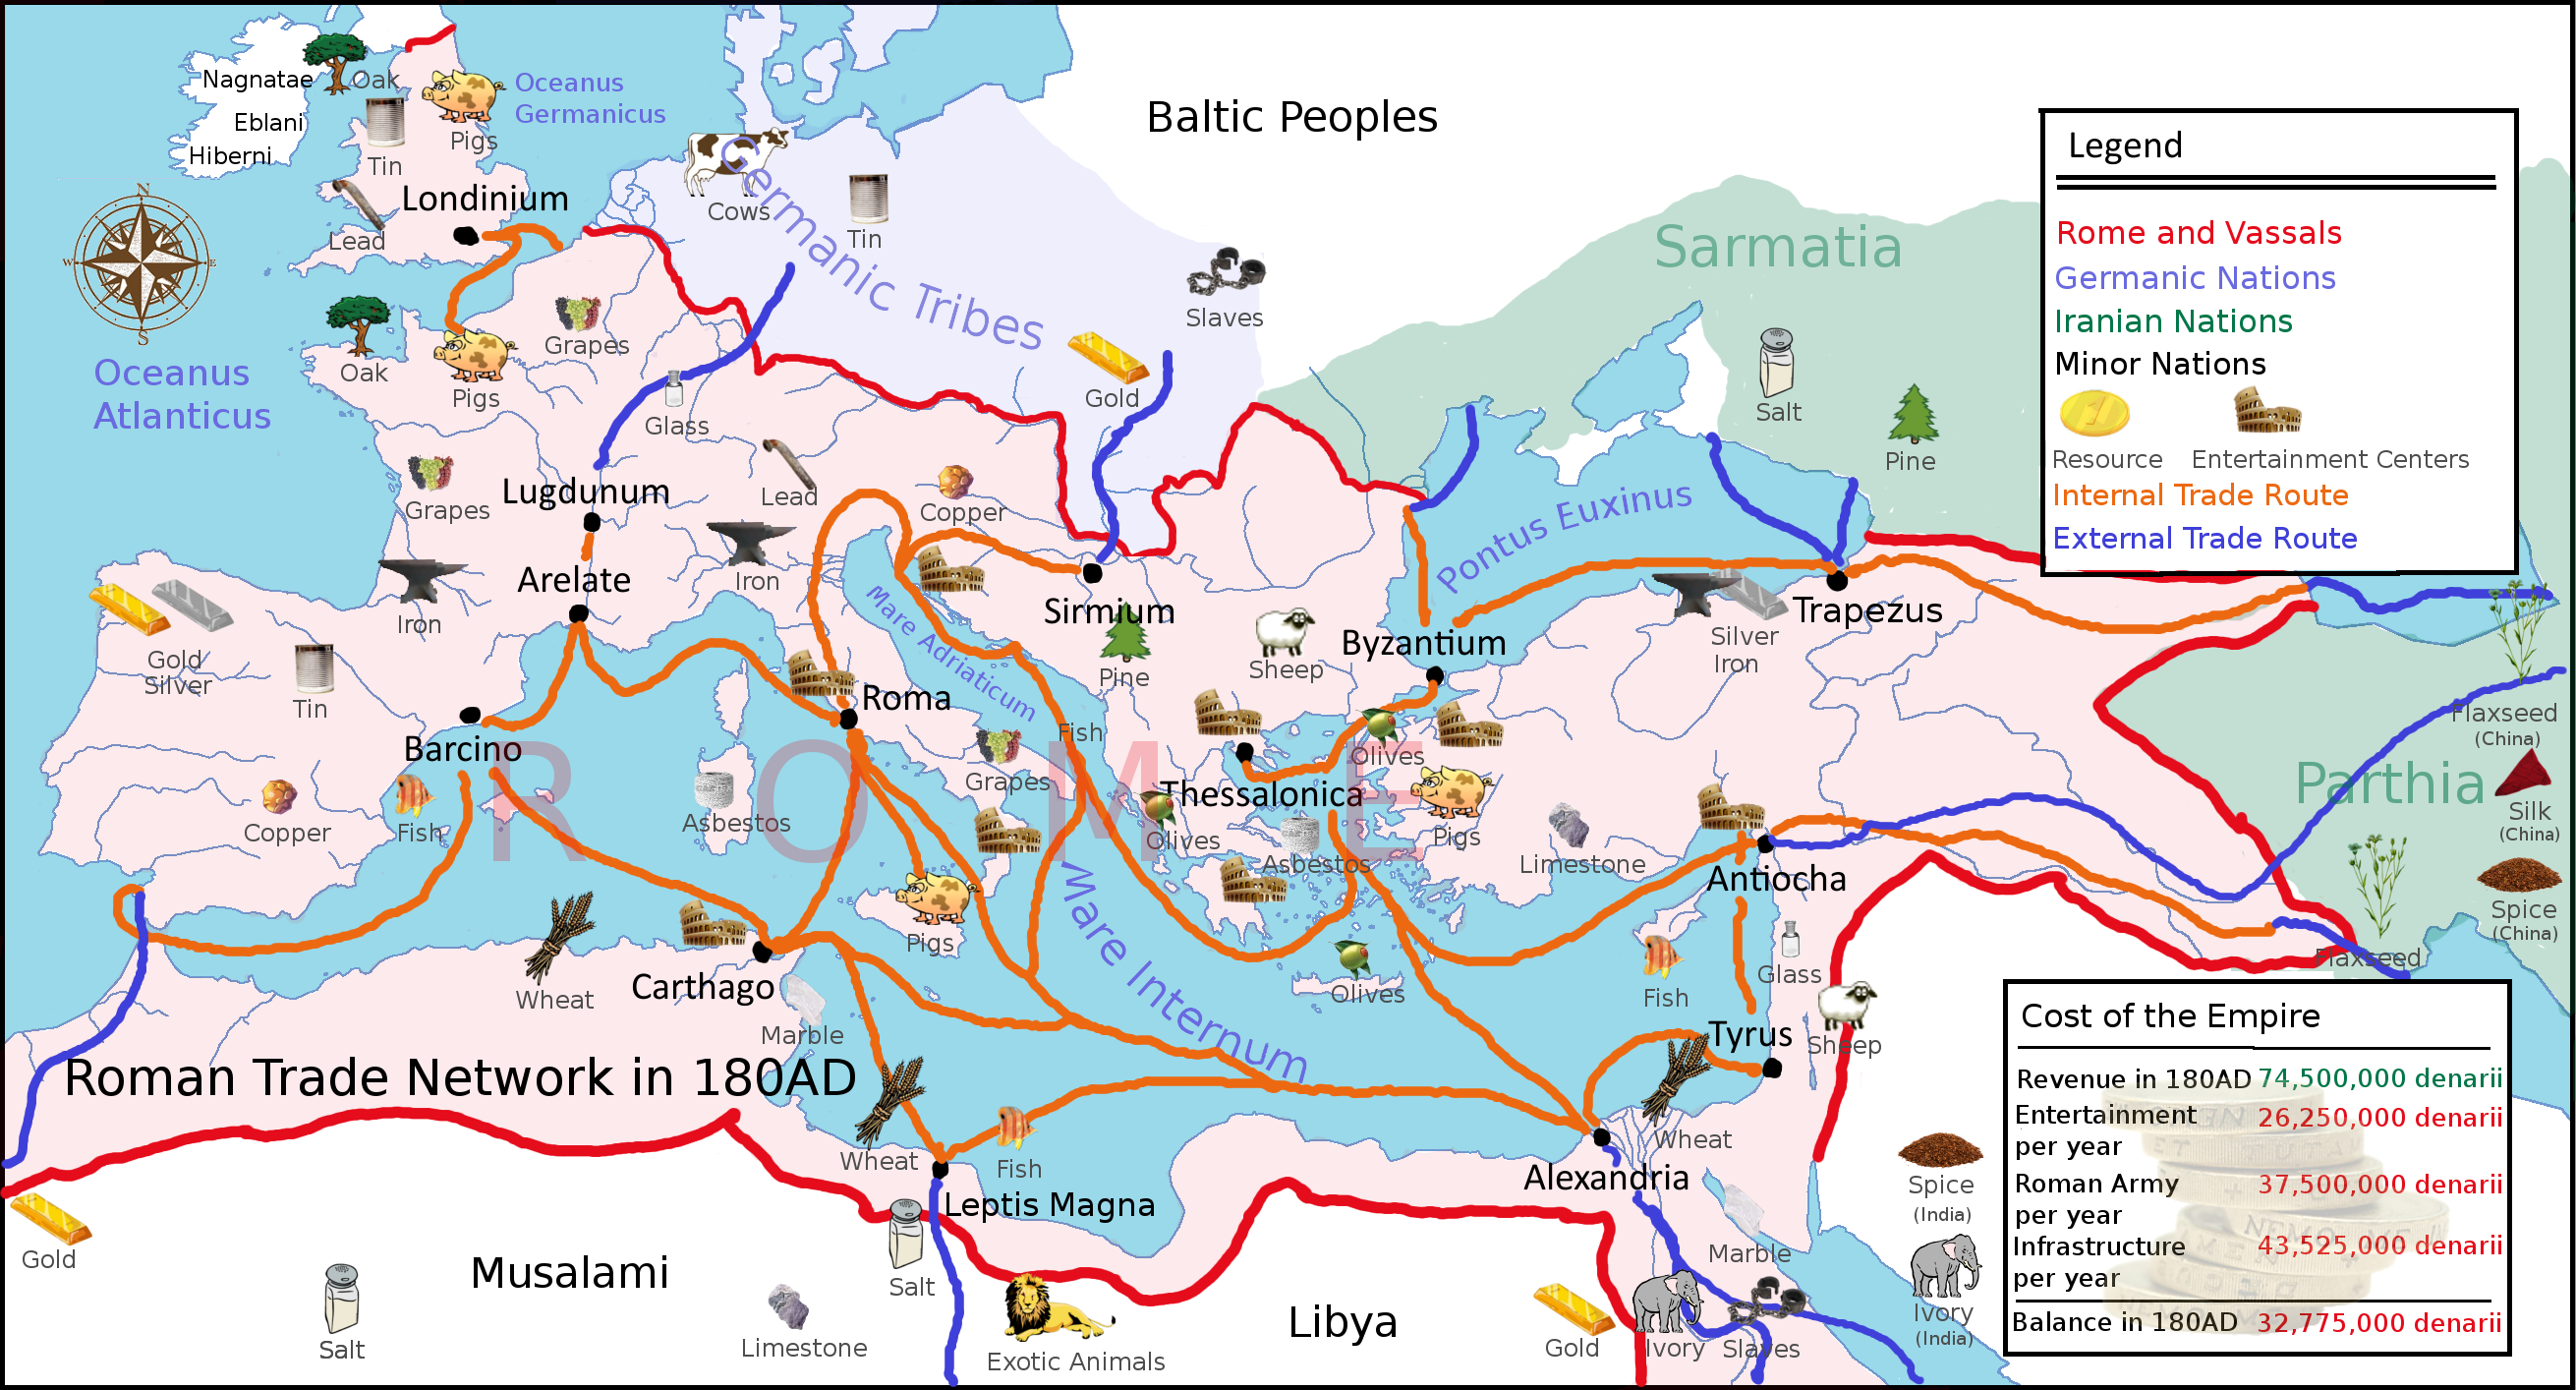 FileEurope 180ad roman trade mappng  Wikimedia Commons